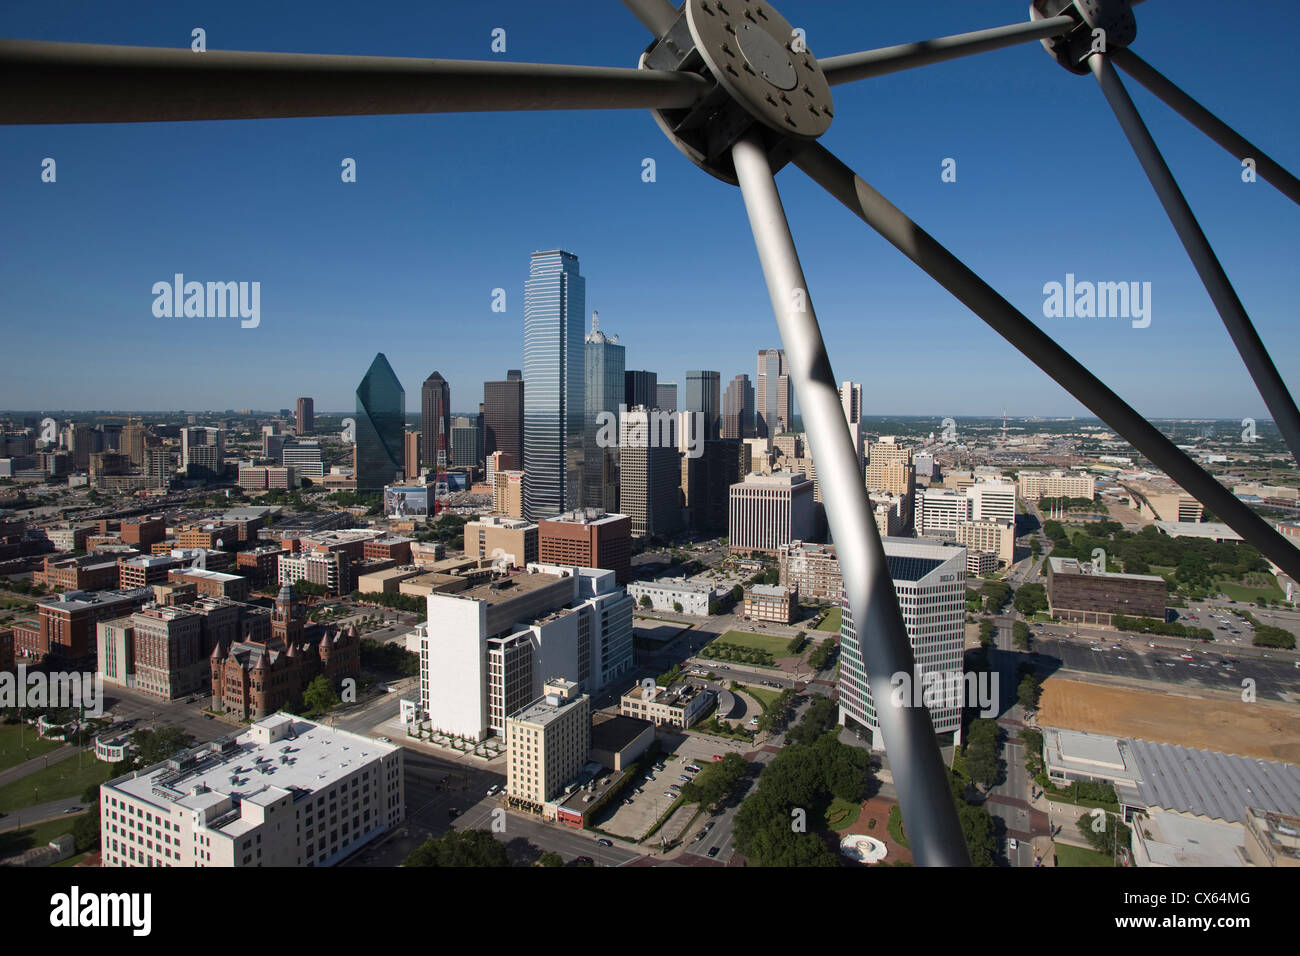 DOWNTOWN SKYLINE FROM REUNION TOWER OBSERVATION DECK DALLAS TEXAS USA - Stock Image